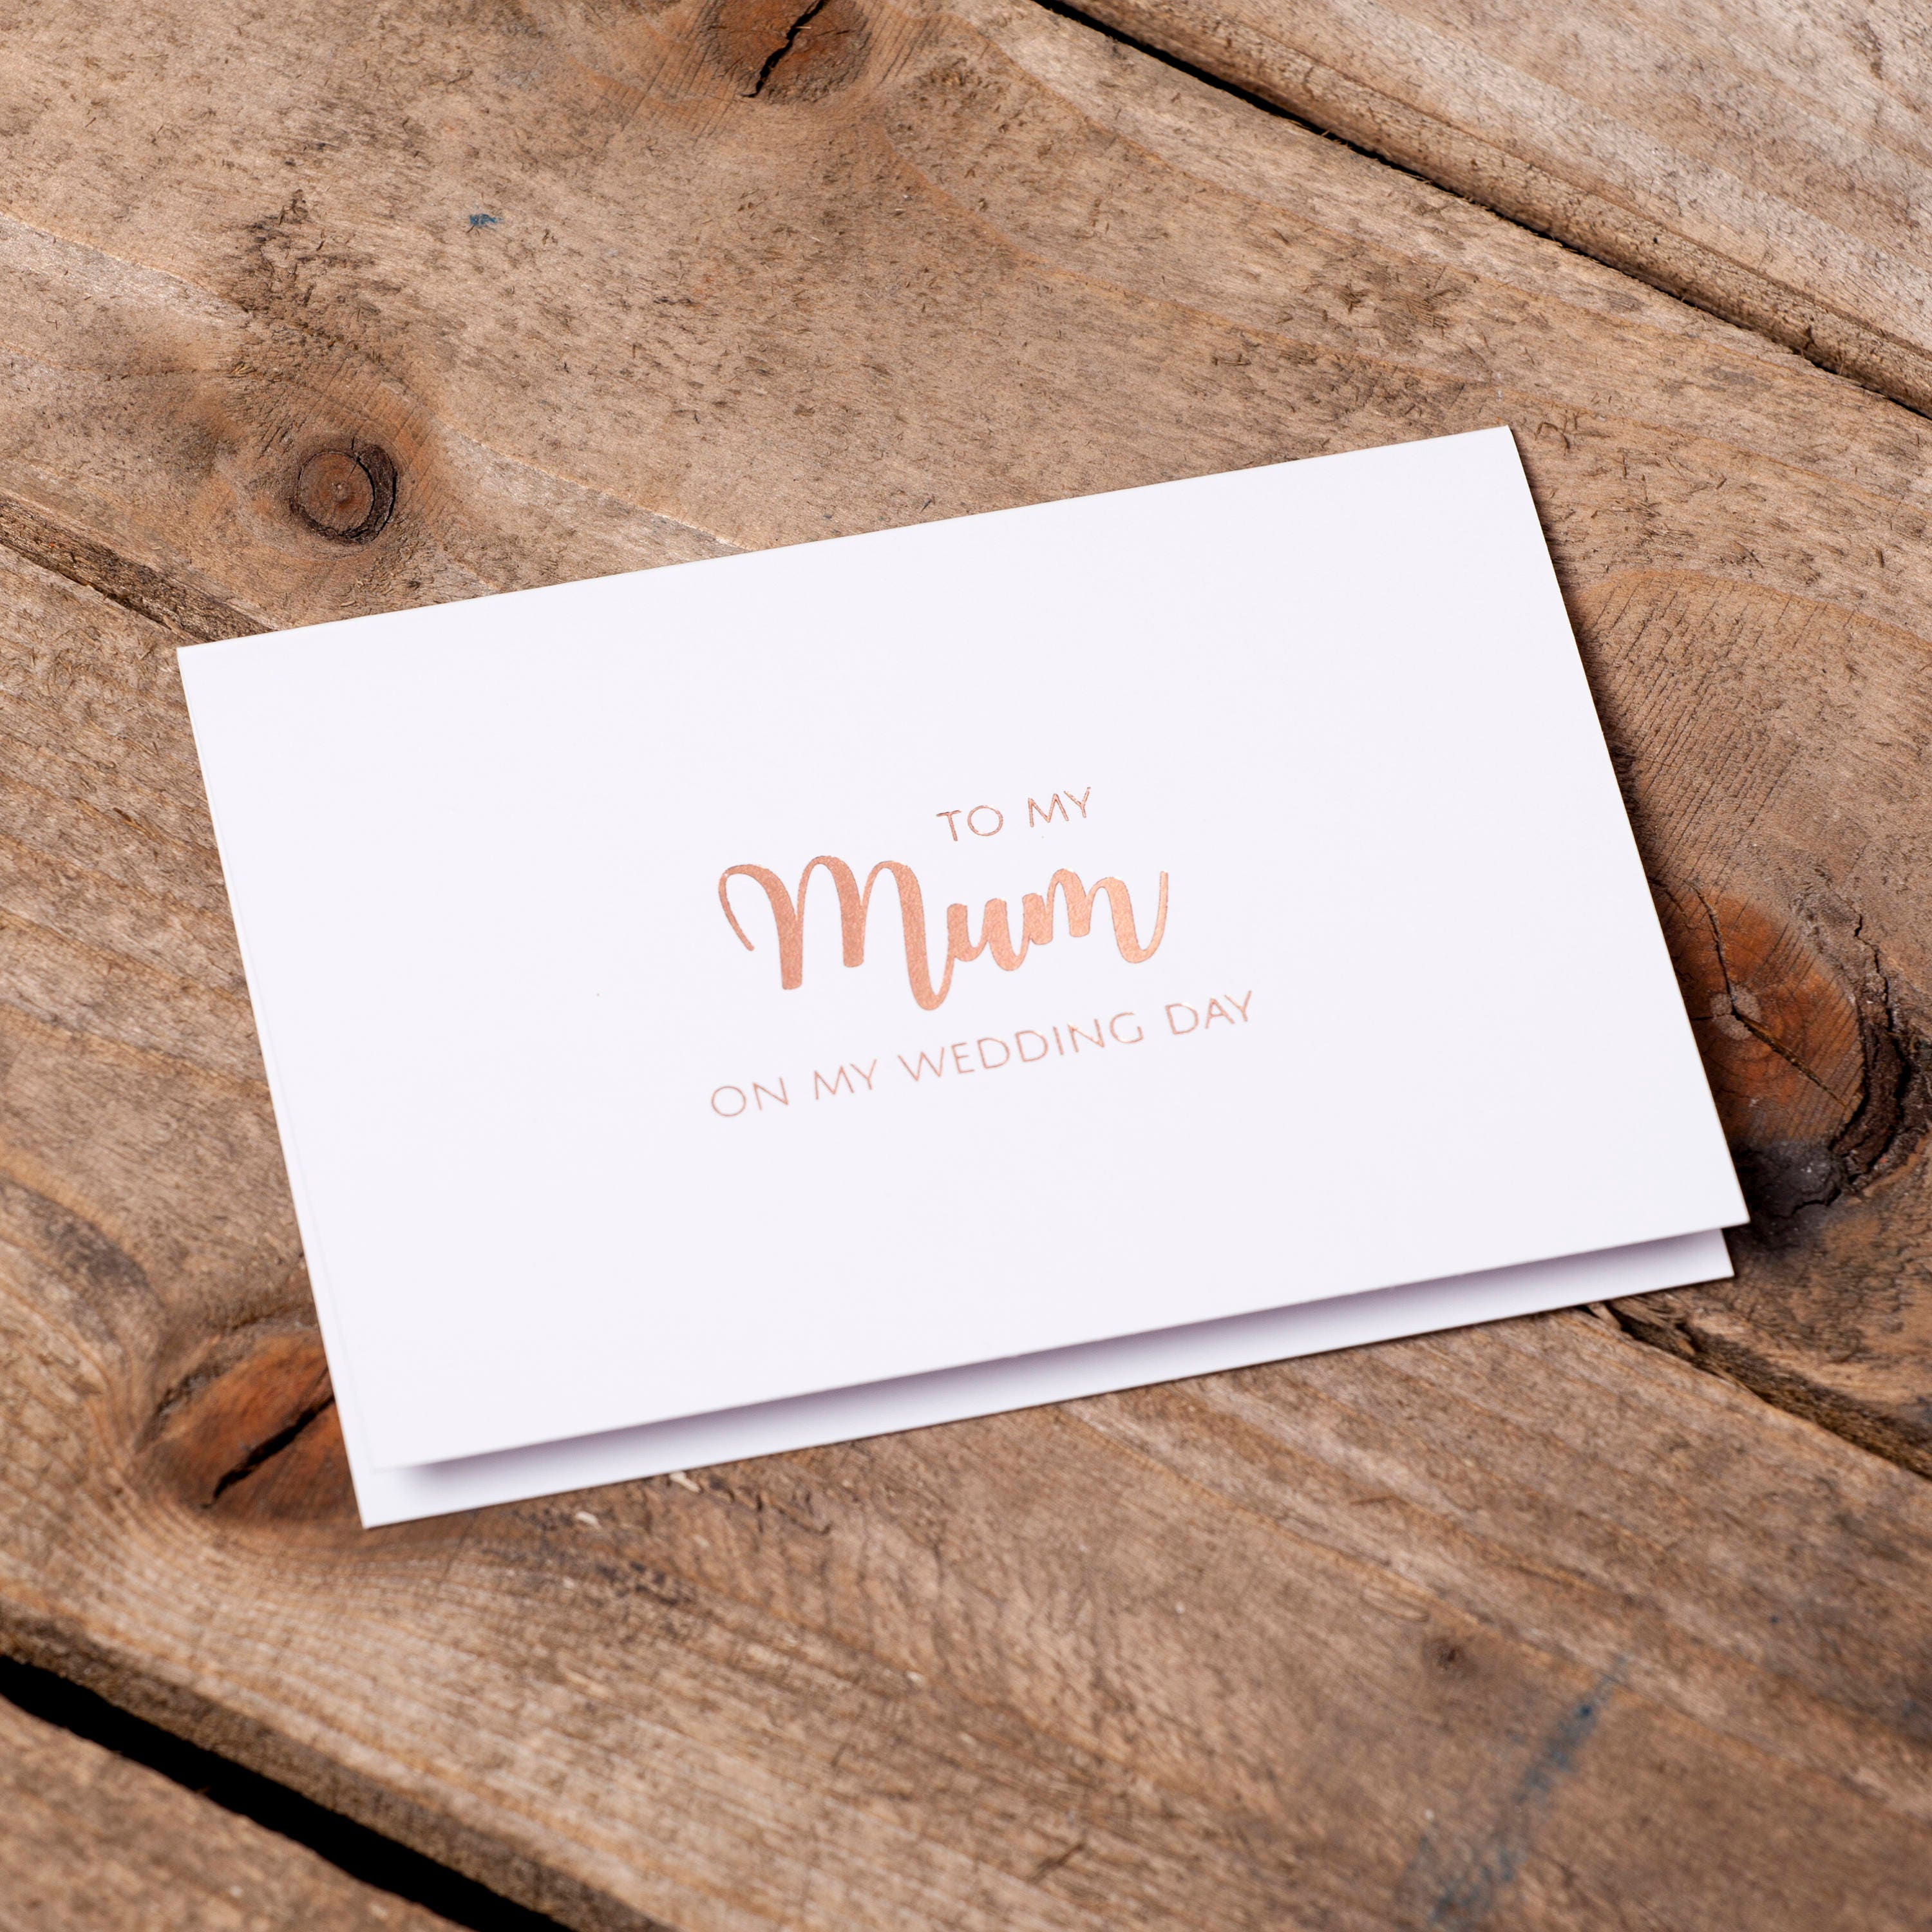 Luxury Rose Gold Foil Printed White Card With Envelope To My Brother On My Wedding Day Card Sibling Wedding Day Card To My Bro